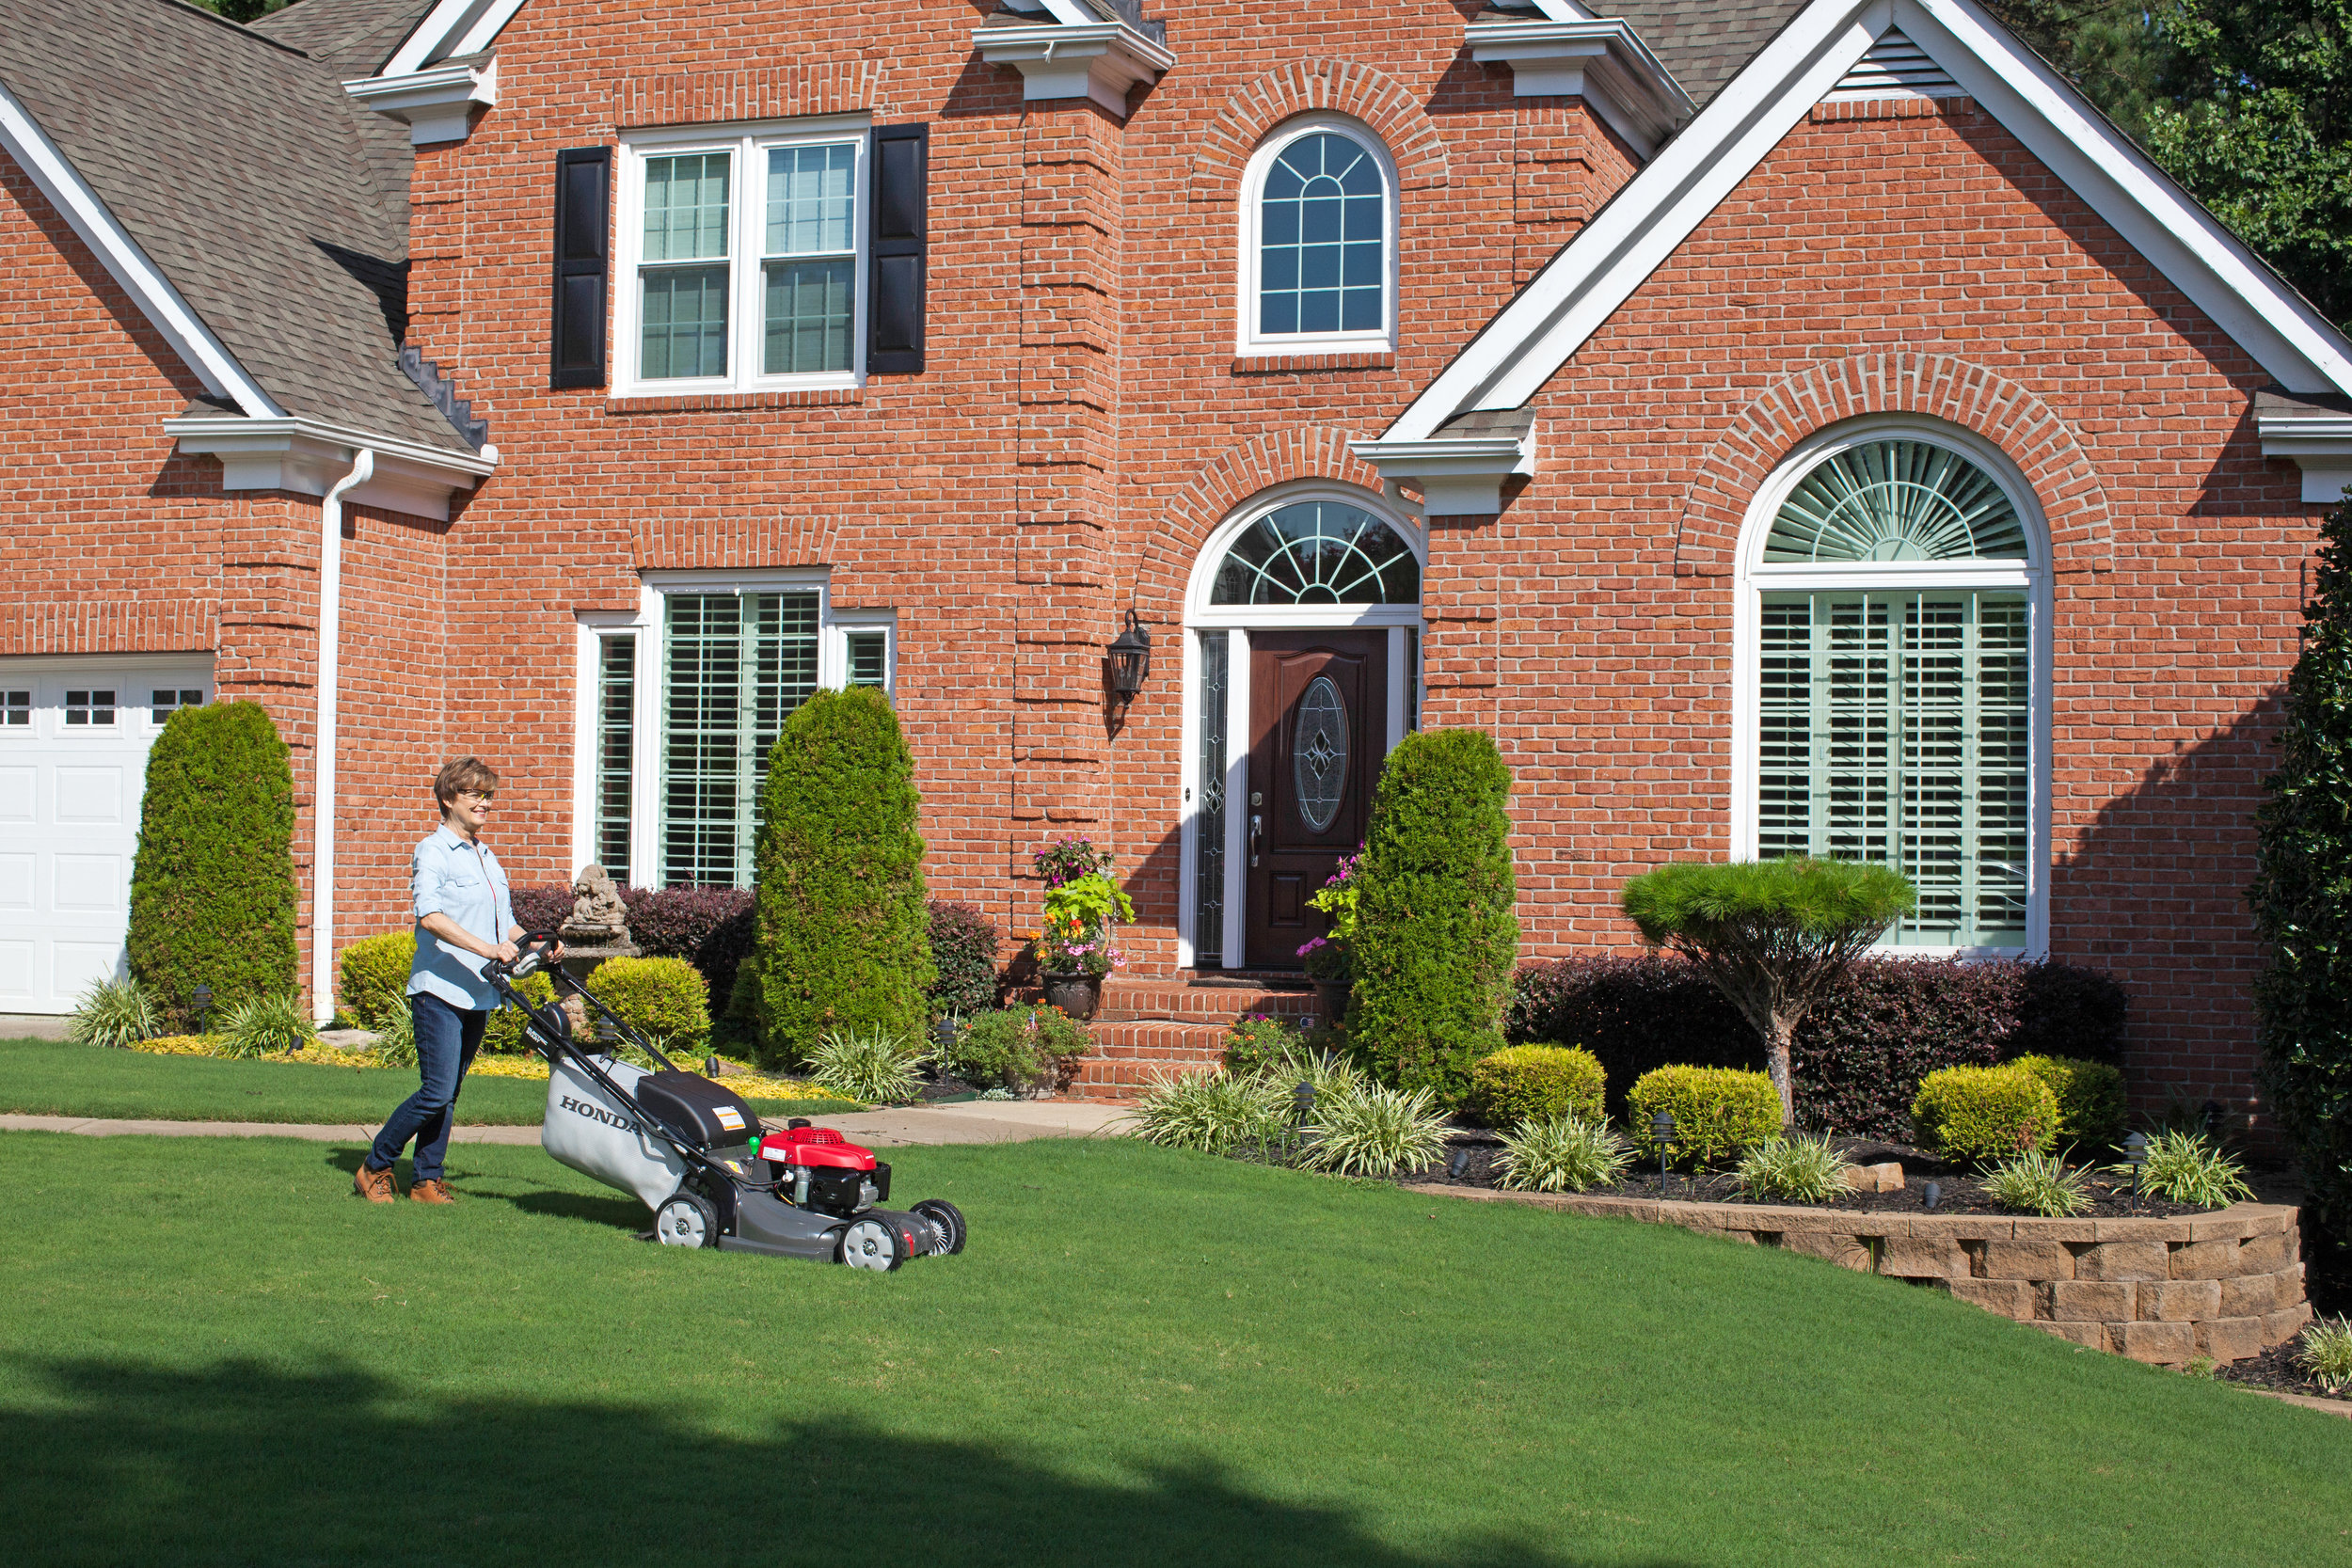 Honda Lawn Mower Service In Baton Rouge: Preparing For Spring And Summer